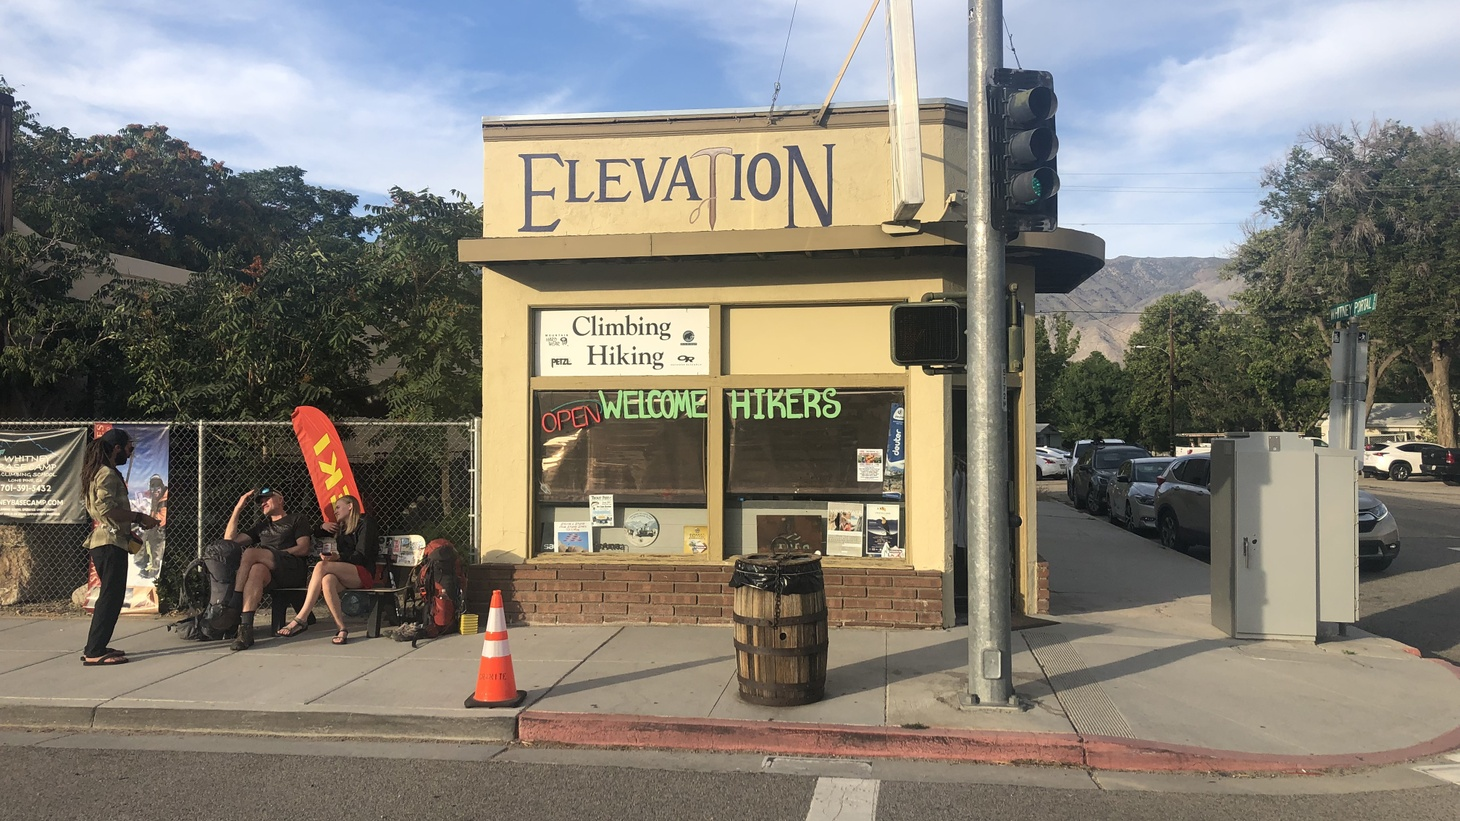 PCT hikers wait for a ride to the trail outside Elevation Sierra Adventure, an outdoor outfitter in Lone Pine, CA.